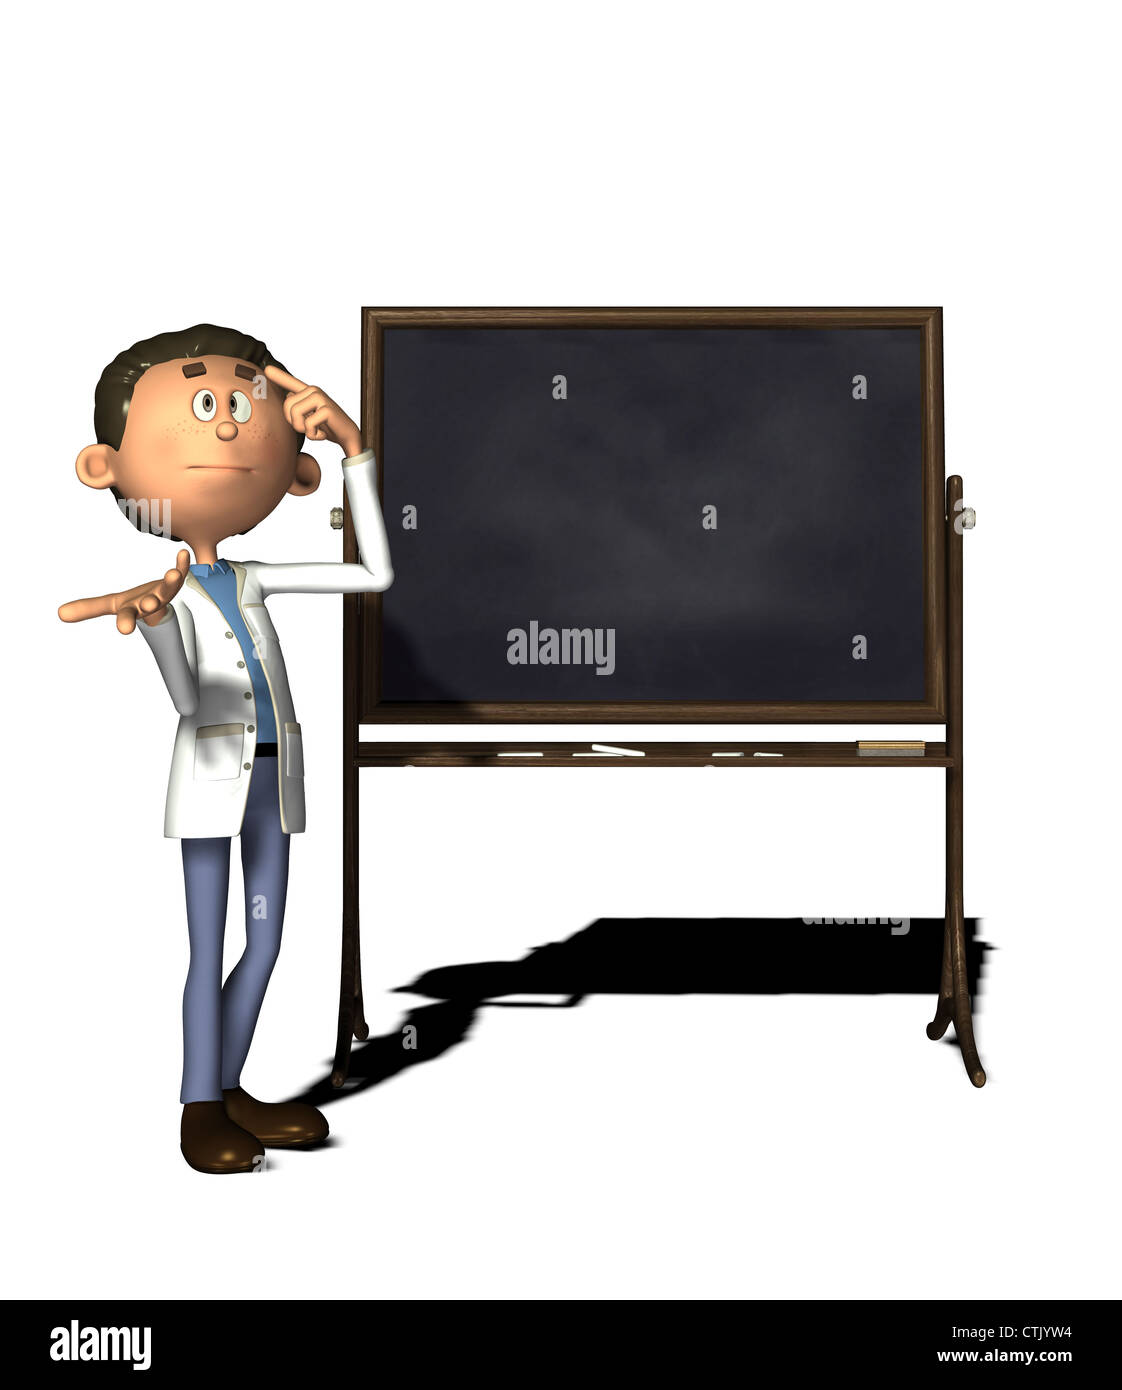 cartoon figure chemist with board Stock Photo